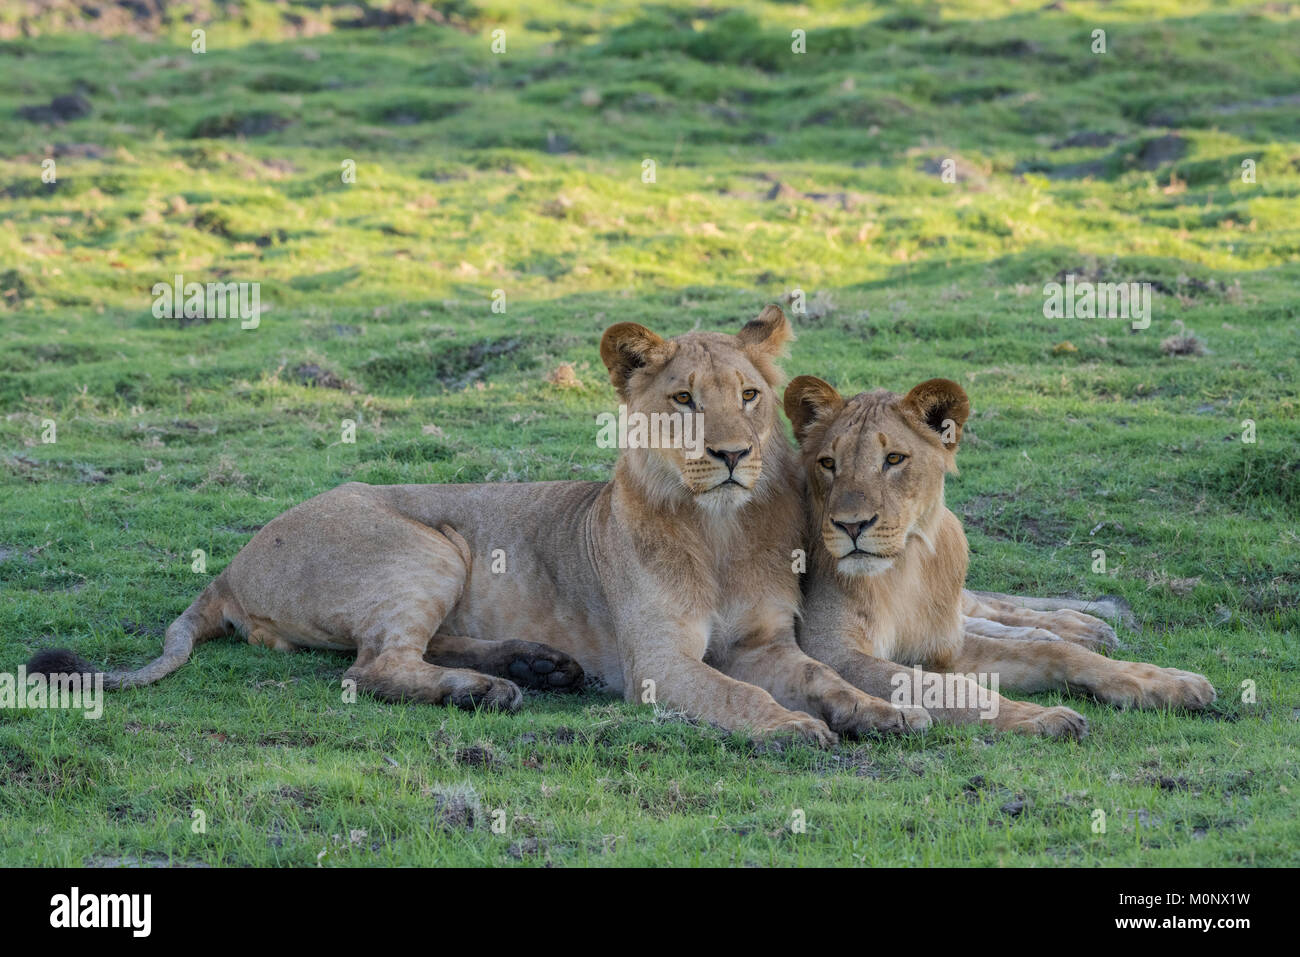 Lion (Panthera leo),two young males lying close together,Chobe National Park,Chobe District,Botswana - Stock Image